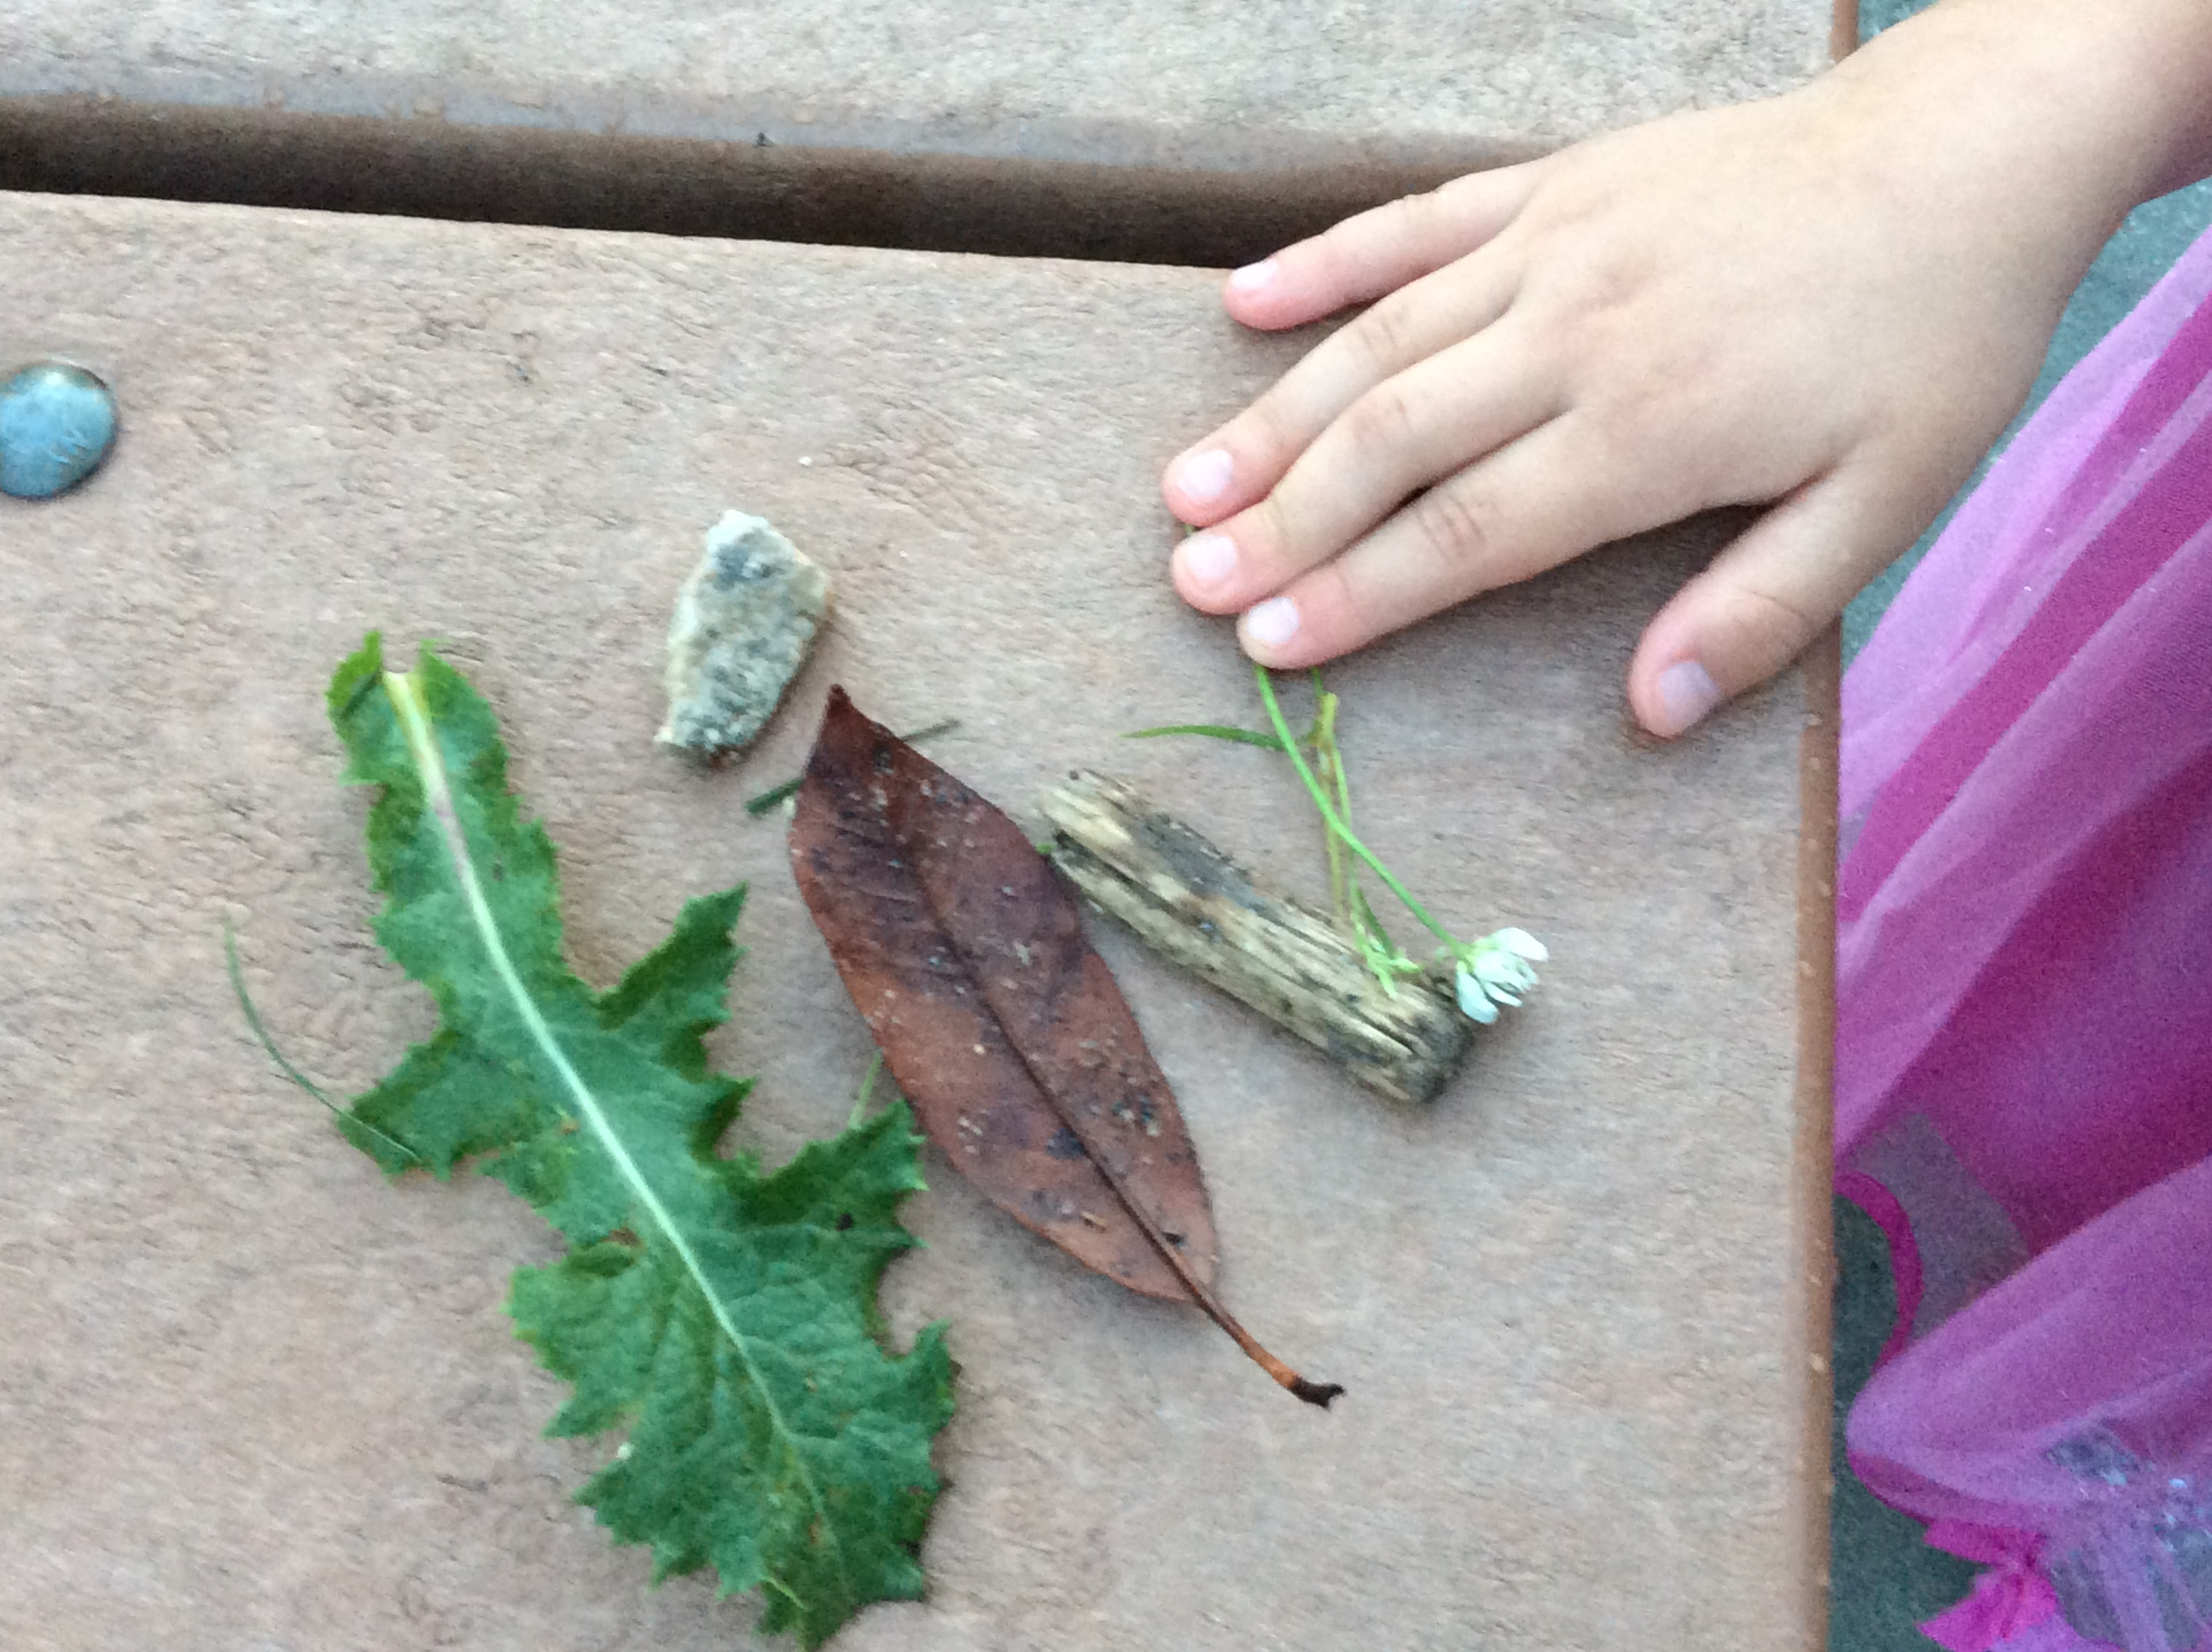 Language learning outdoor activities connect kids to the natural world.